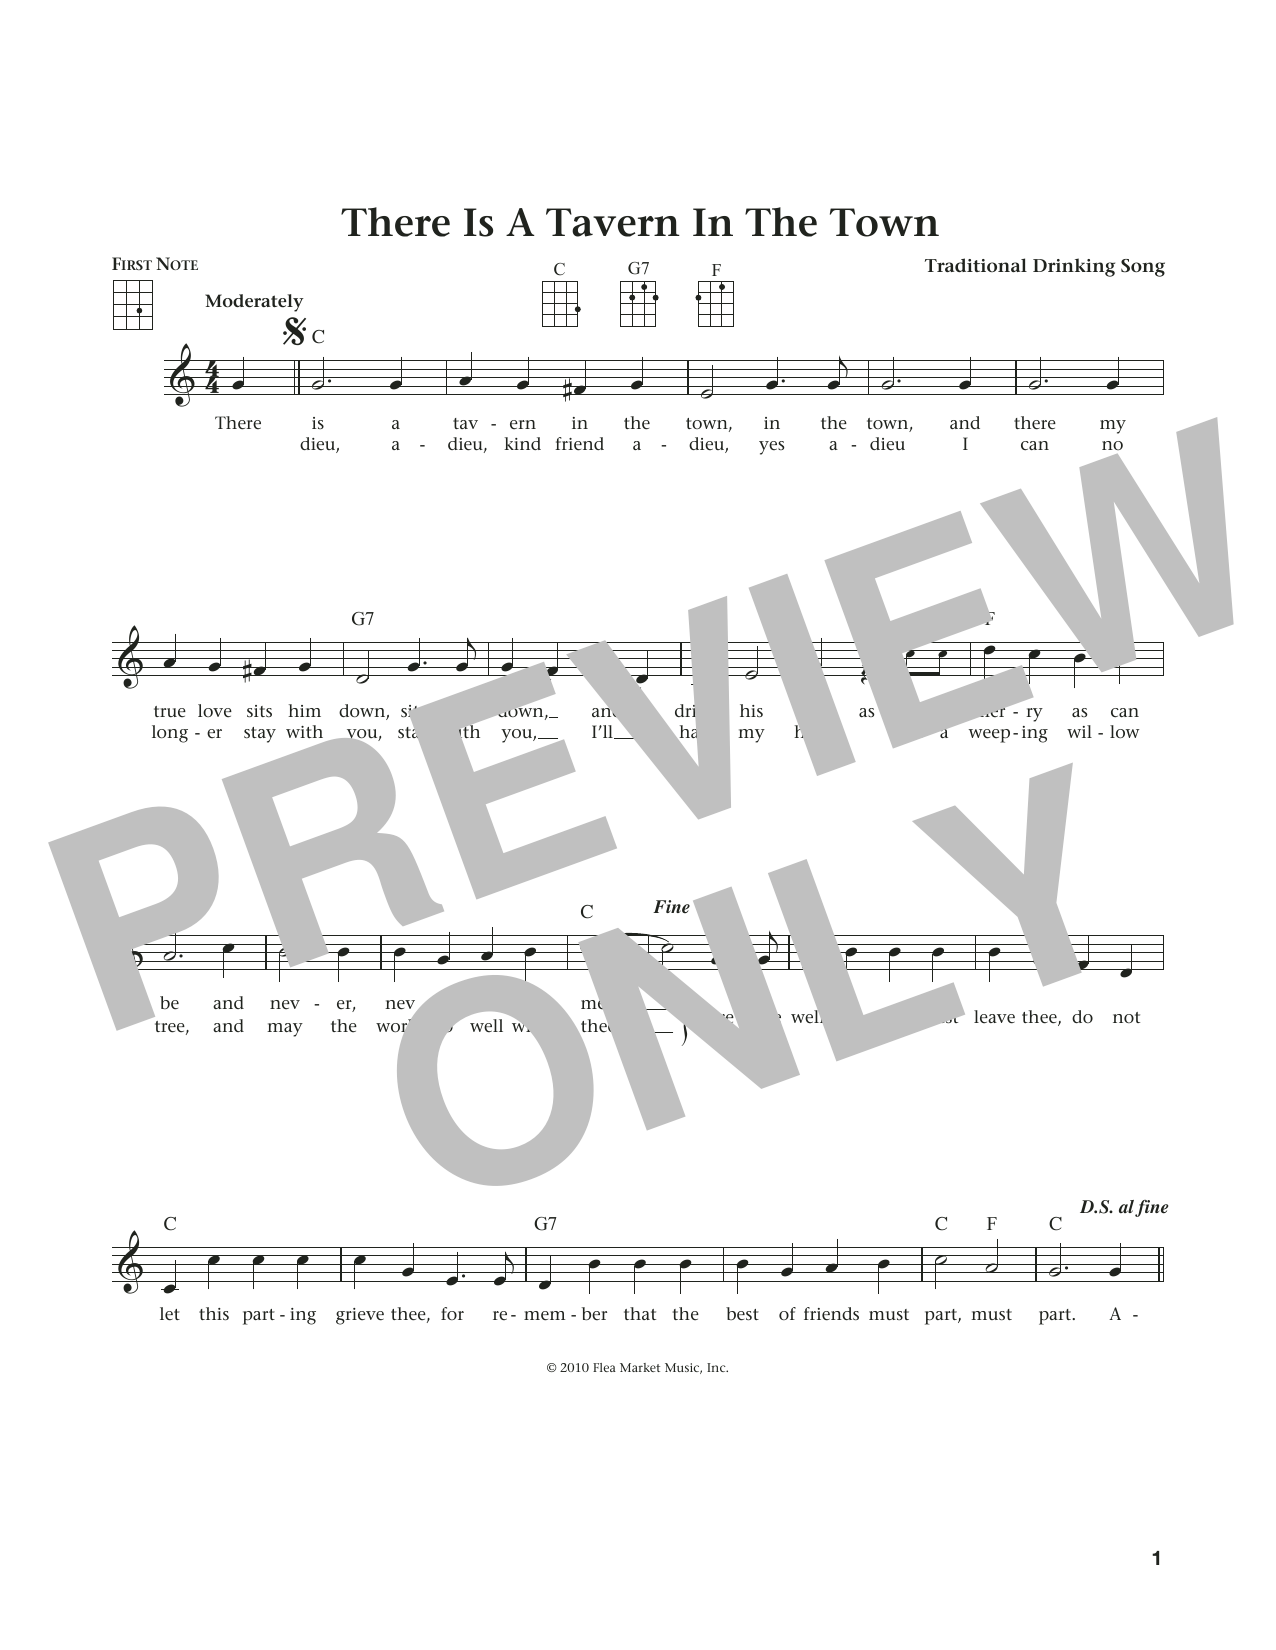 There Is A Tavern In The Town (from The Daily Ukulele) (arr. Liz and Jim Beloff) (Ukulele)